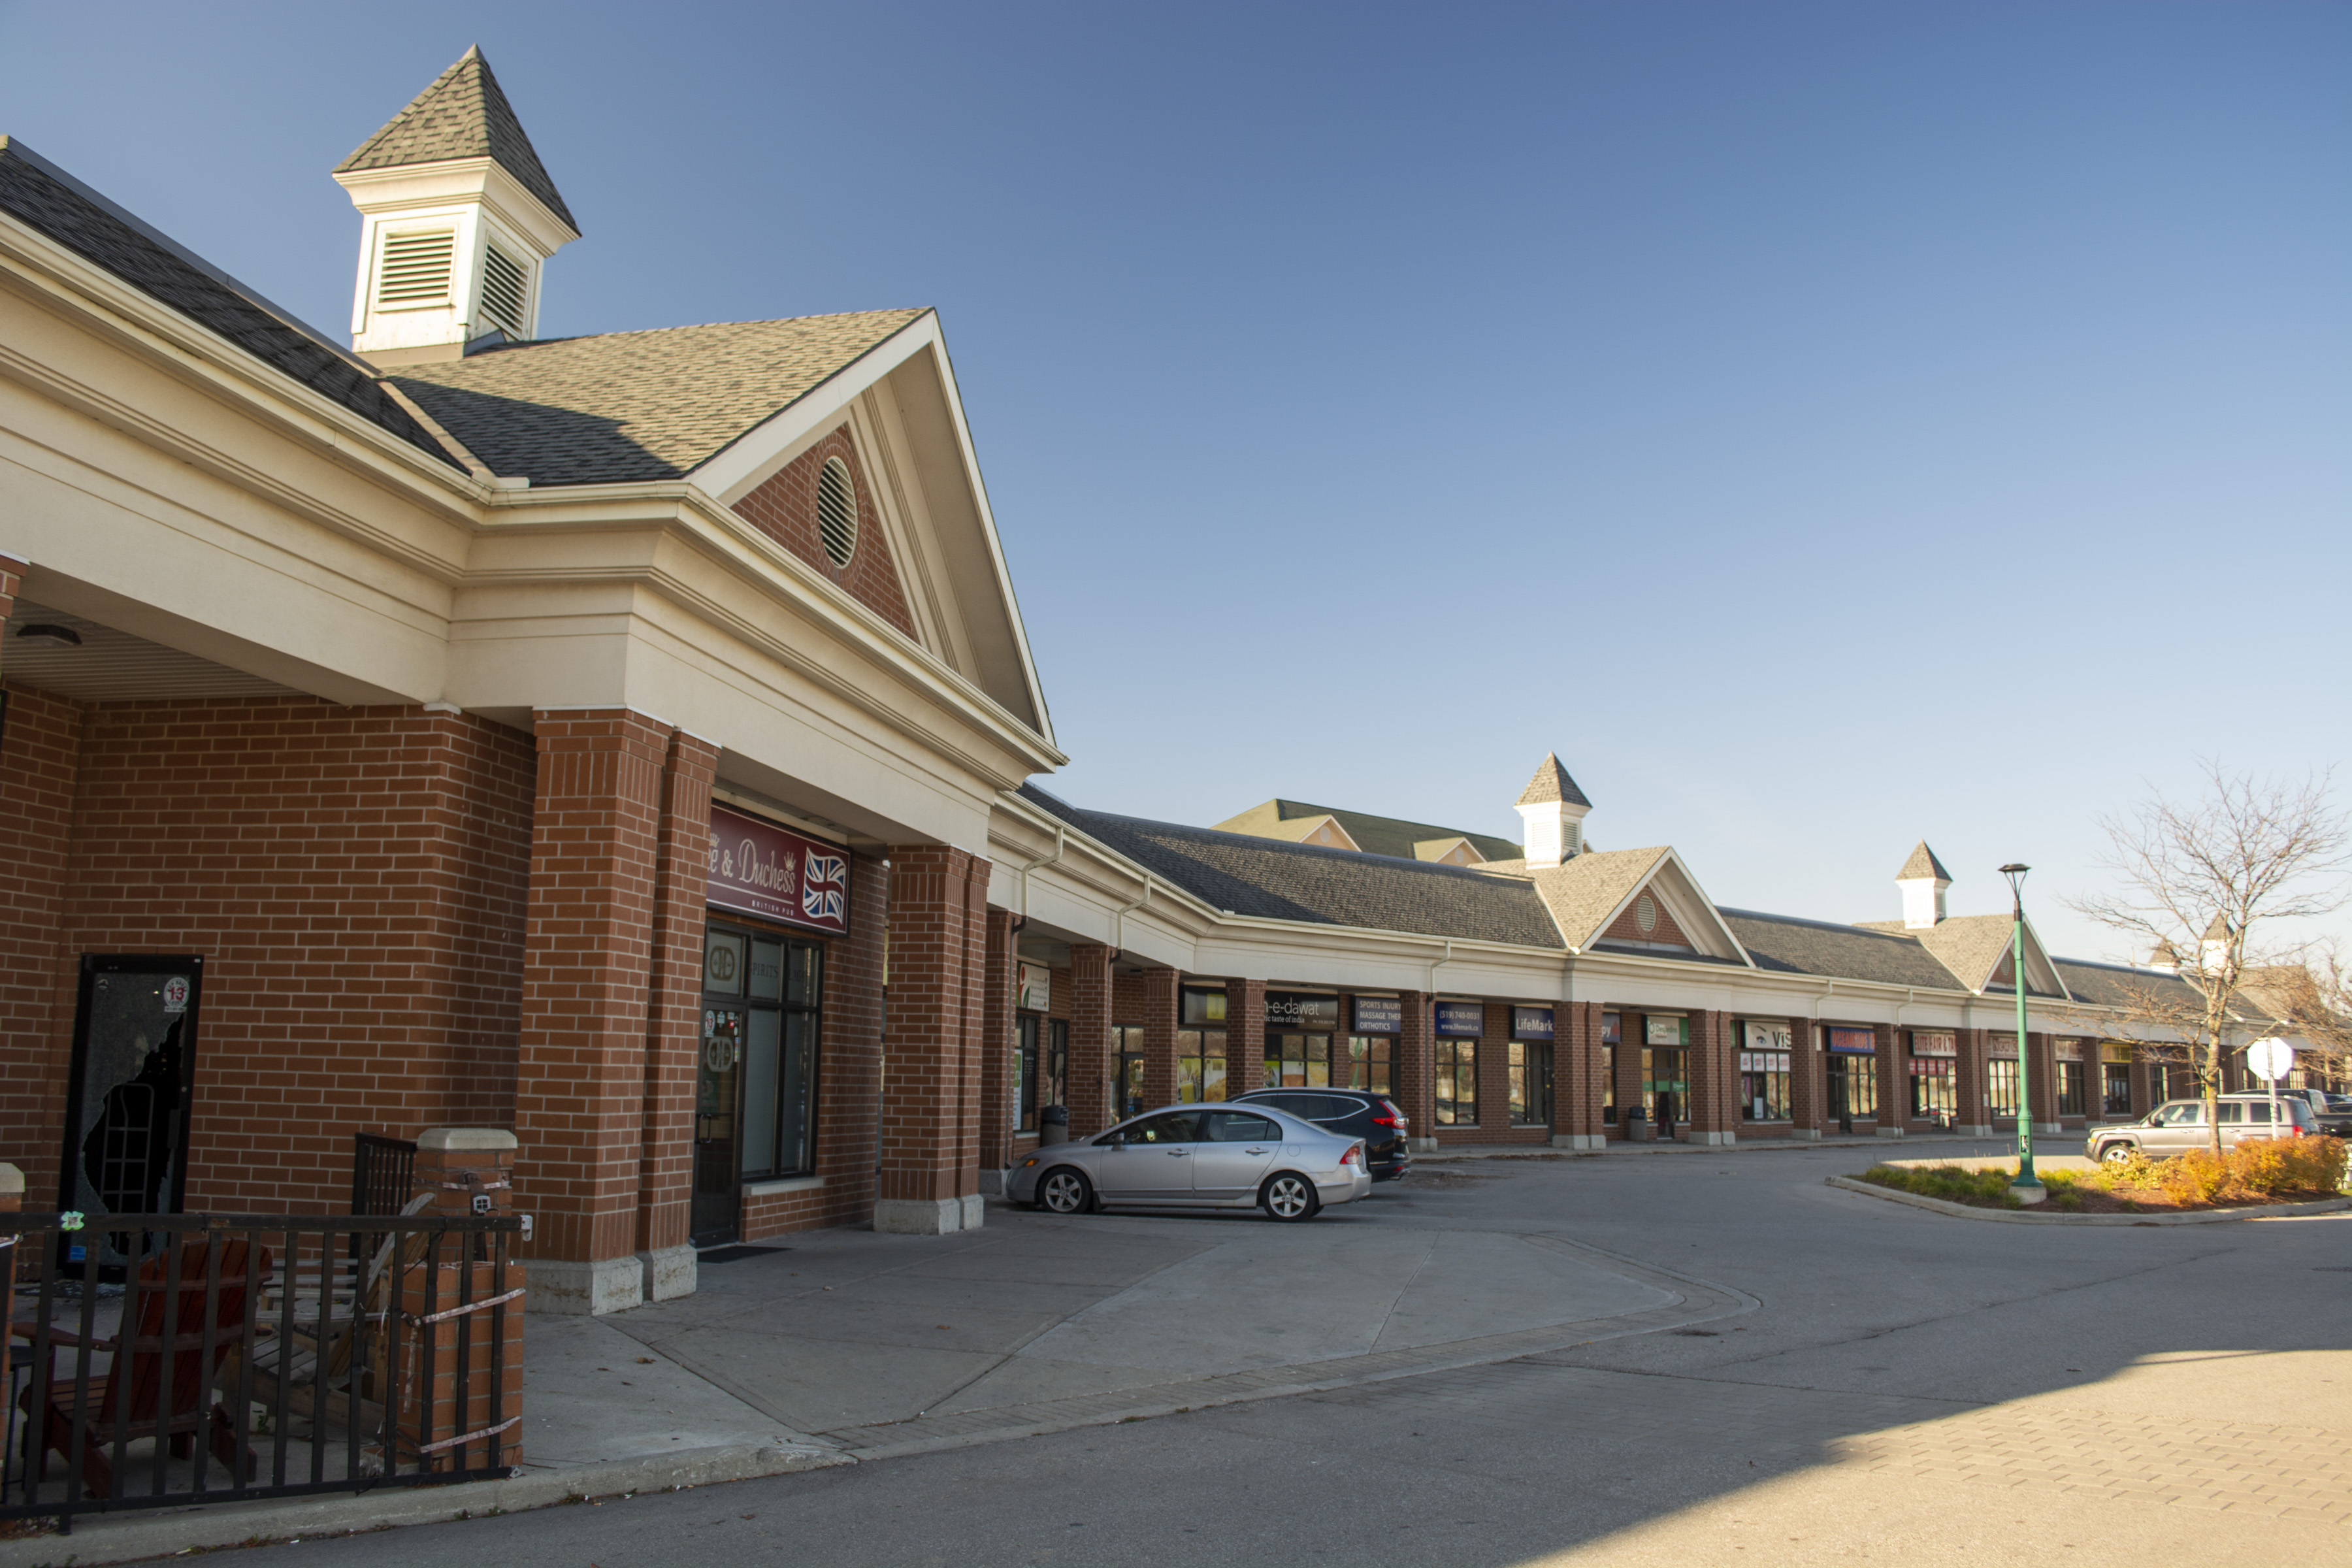 900 Jamieson Parkway (Multiple Units), Cambridge | Retail Space Available for Lease